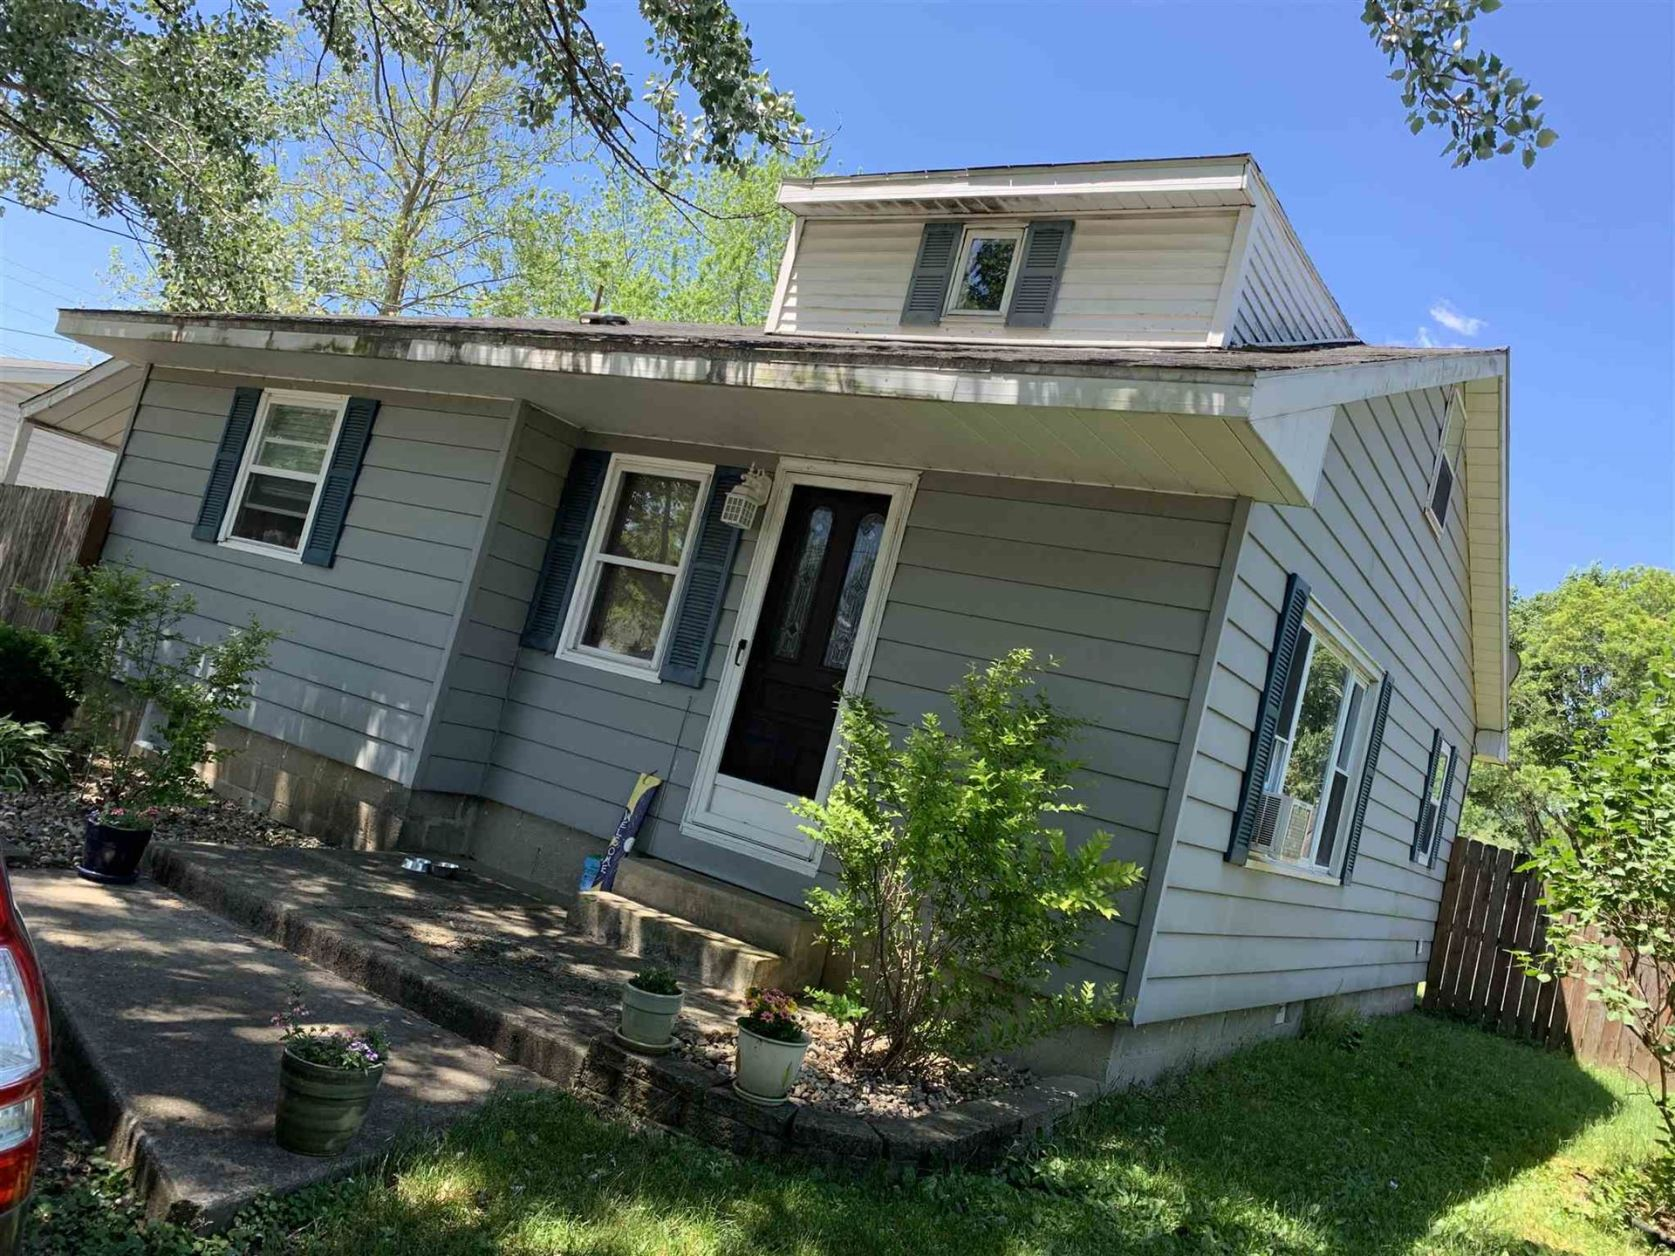 Photo of 6341 E TRUSDELL AVE Avenue, Syracuse, IN 46567 (MLS # 202022246)